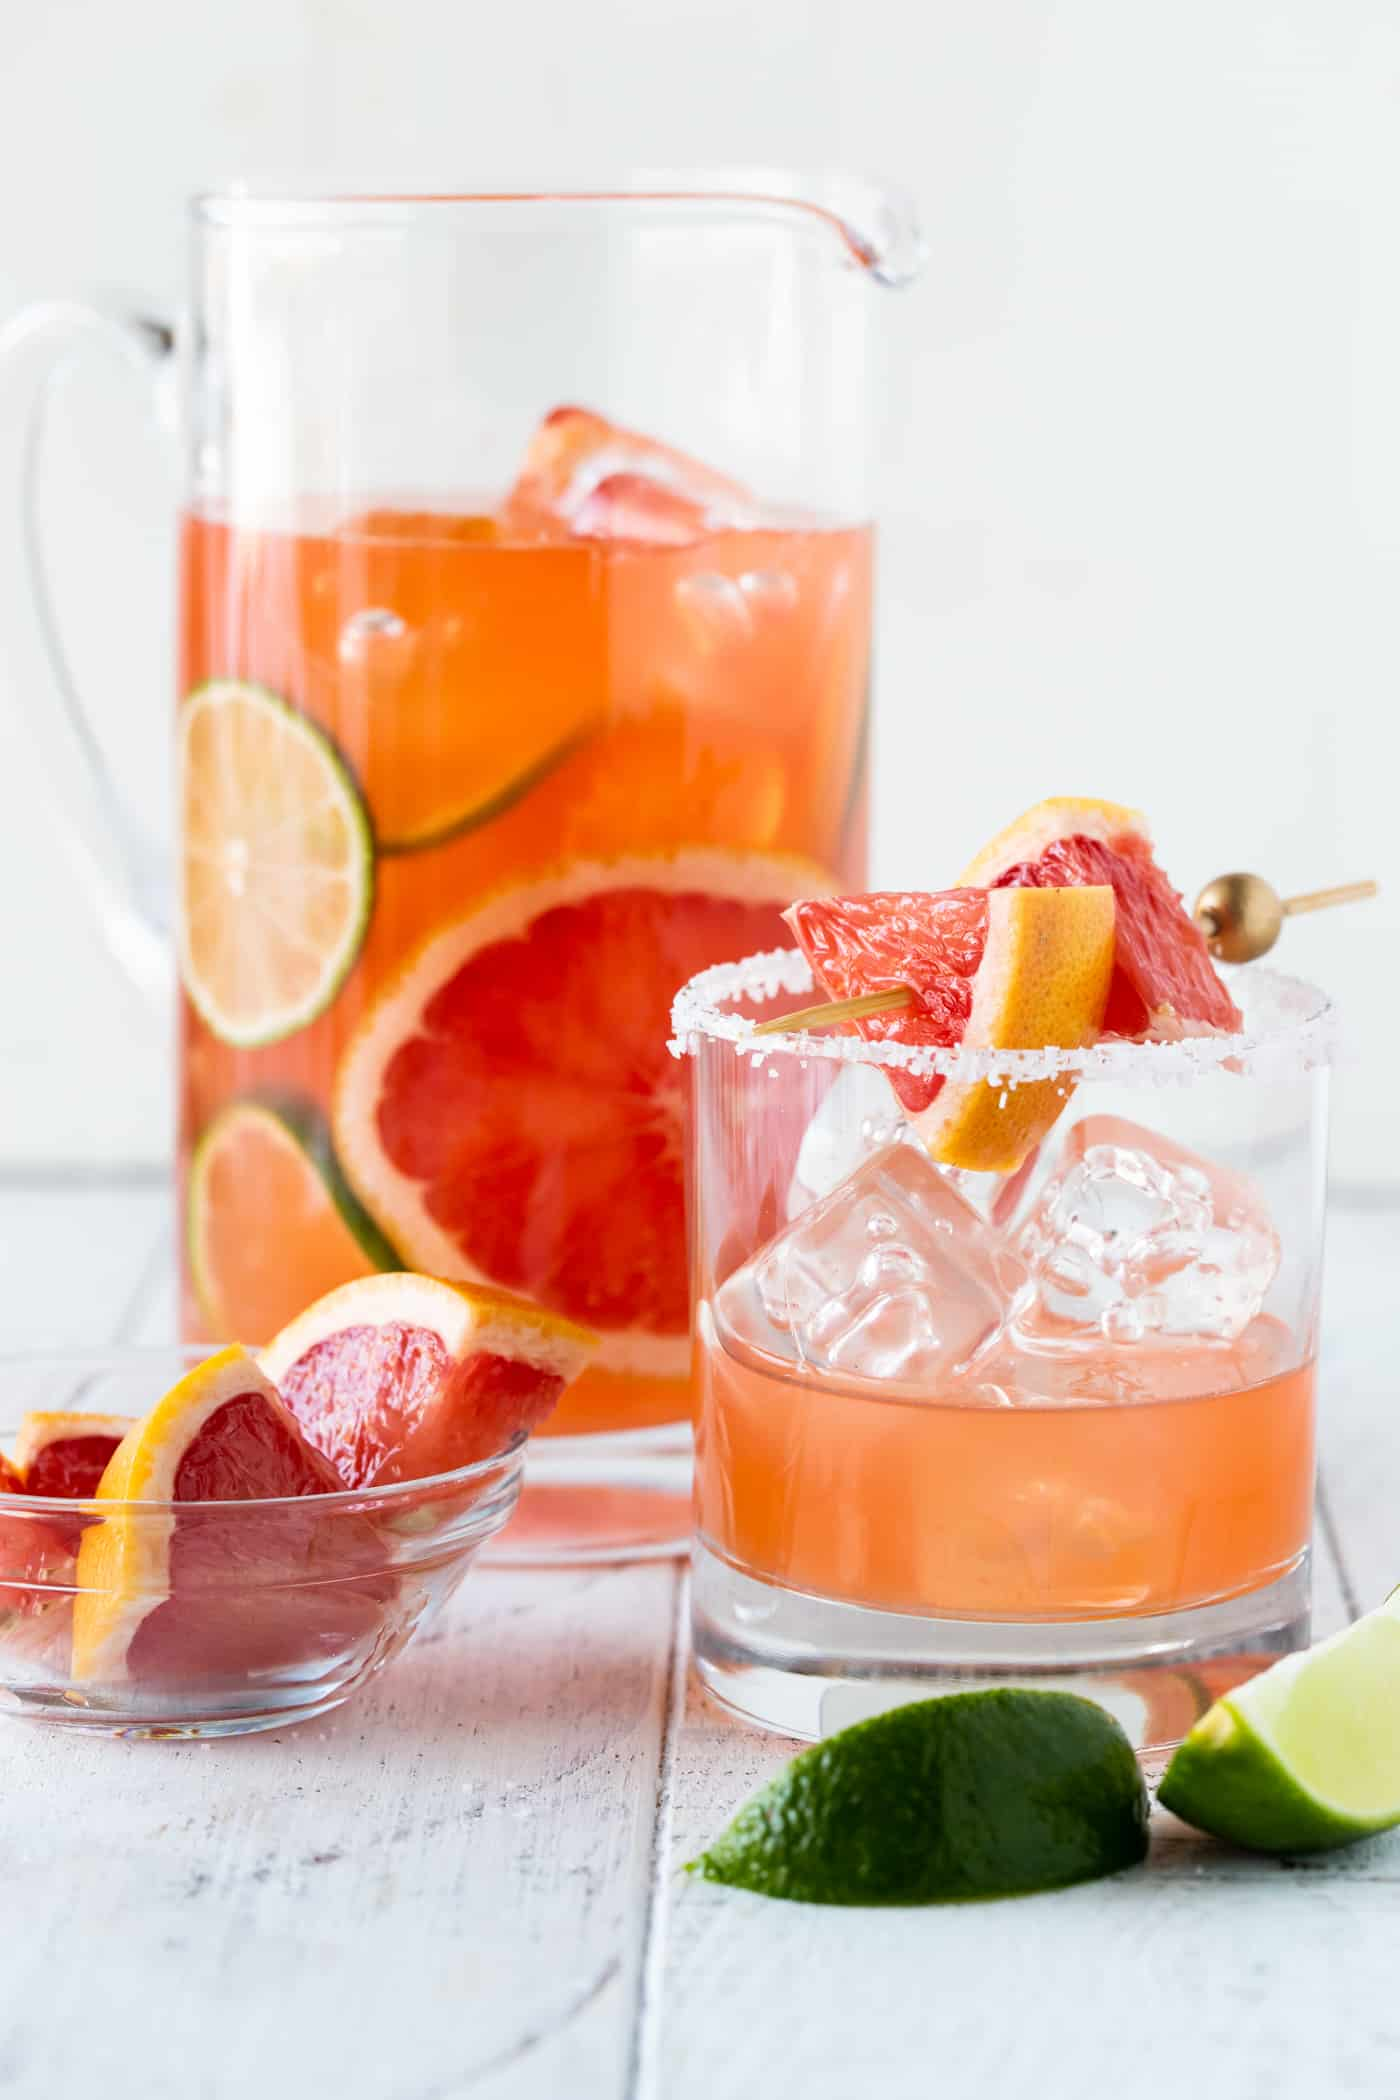 Grapefruit Aperol Cocktails in a low ball salt rimmed glass with grapefruit. pitcher of grapefruit aperol cocktails on white background.